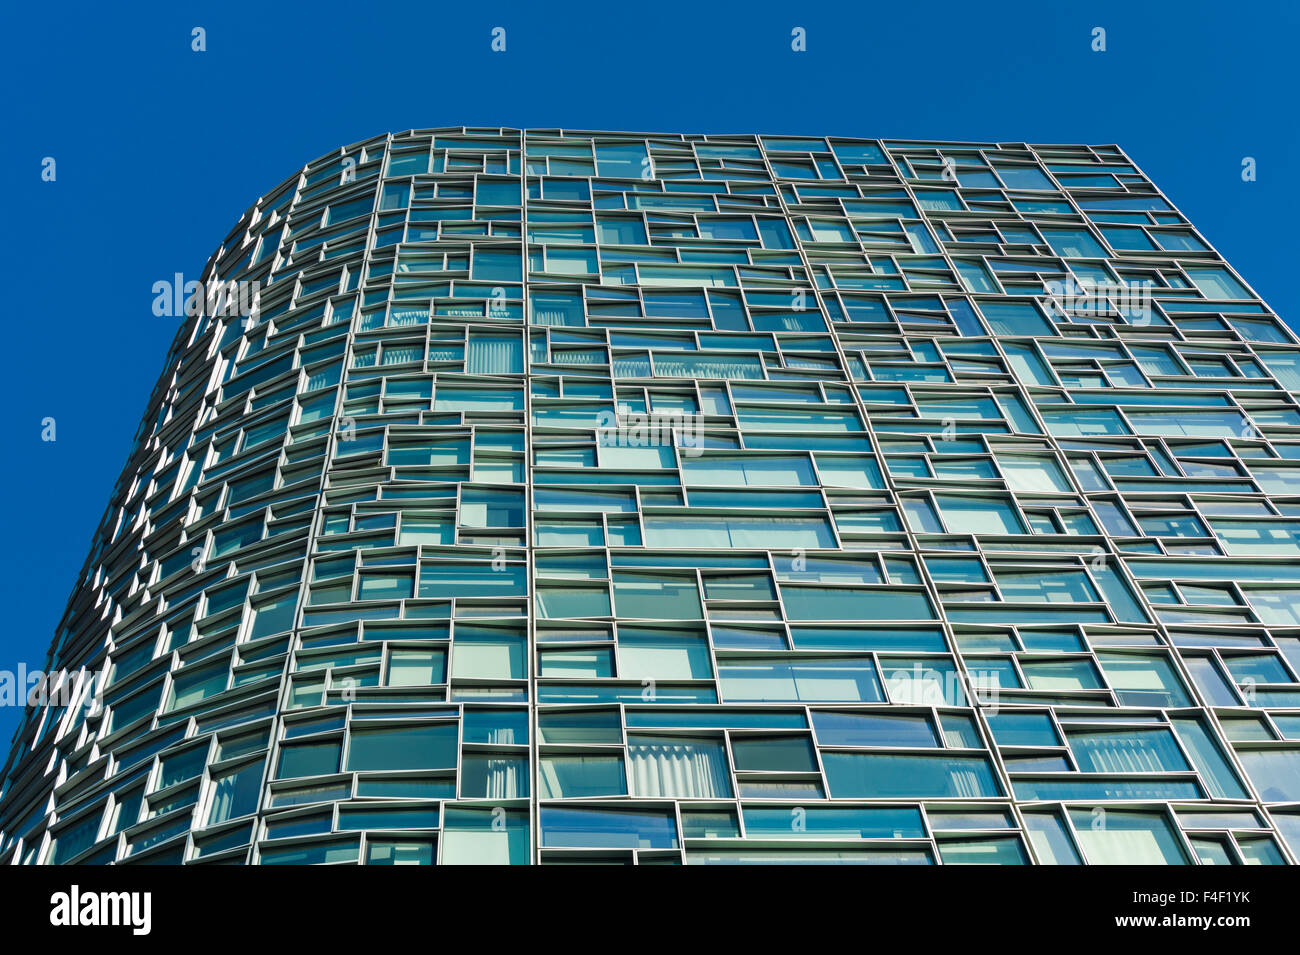 USA, New York, New York City, Lower Manhattan, 100 Eleventh Avenue Building, architect Jean Nouvel - Stock Image